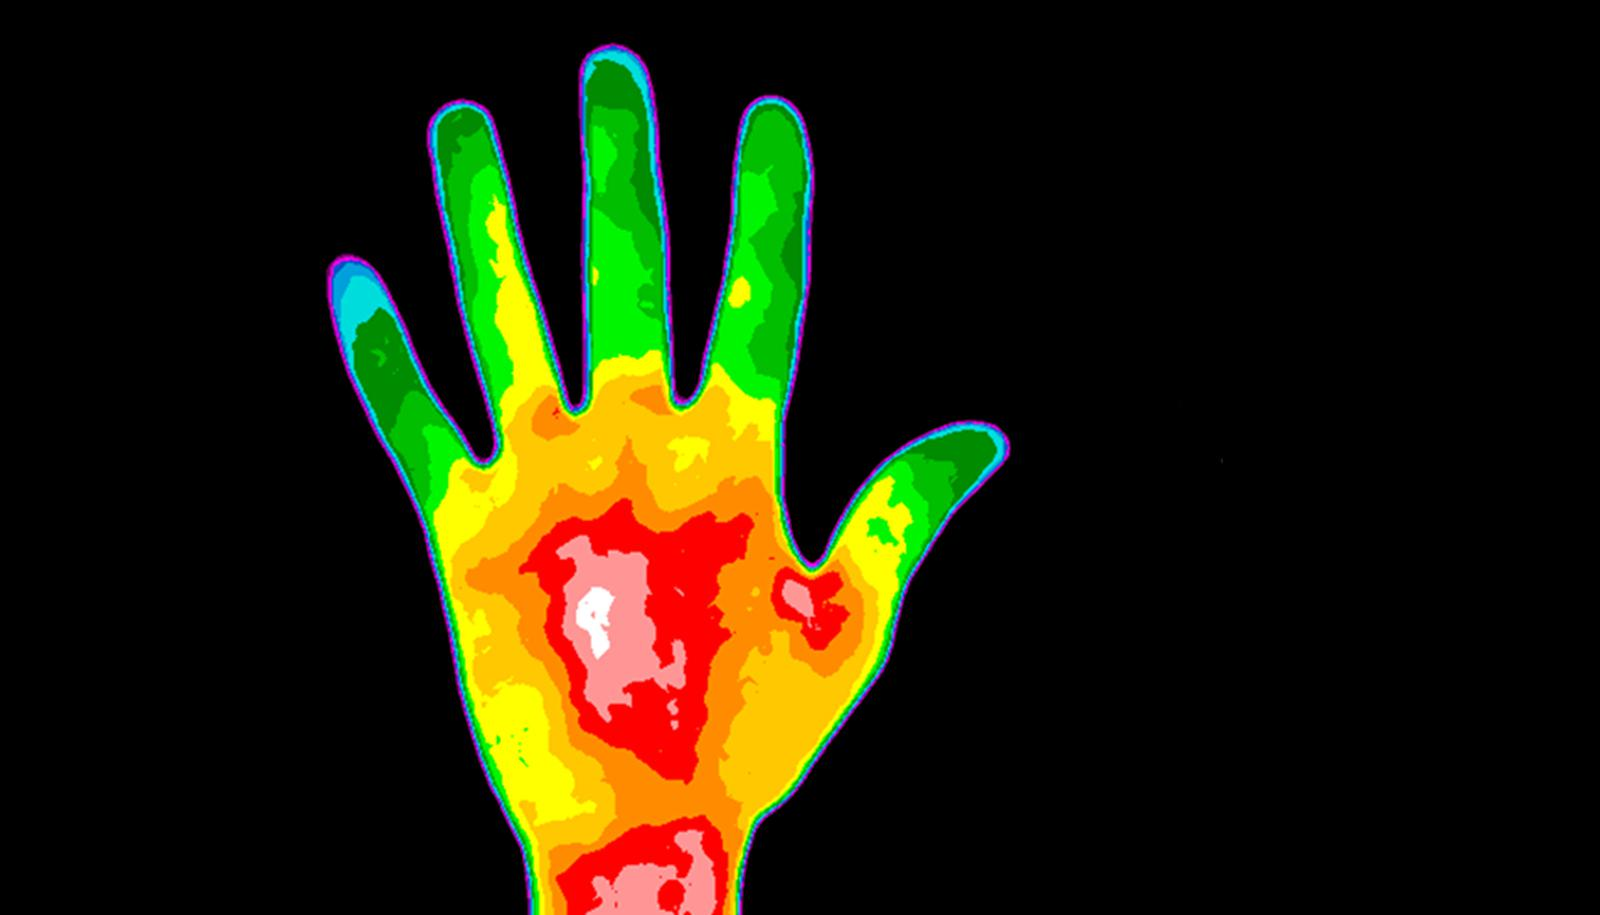 thermographic image of a hand